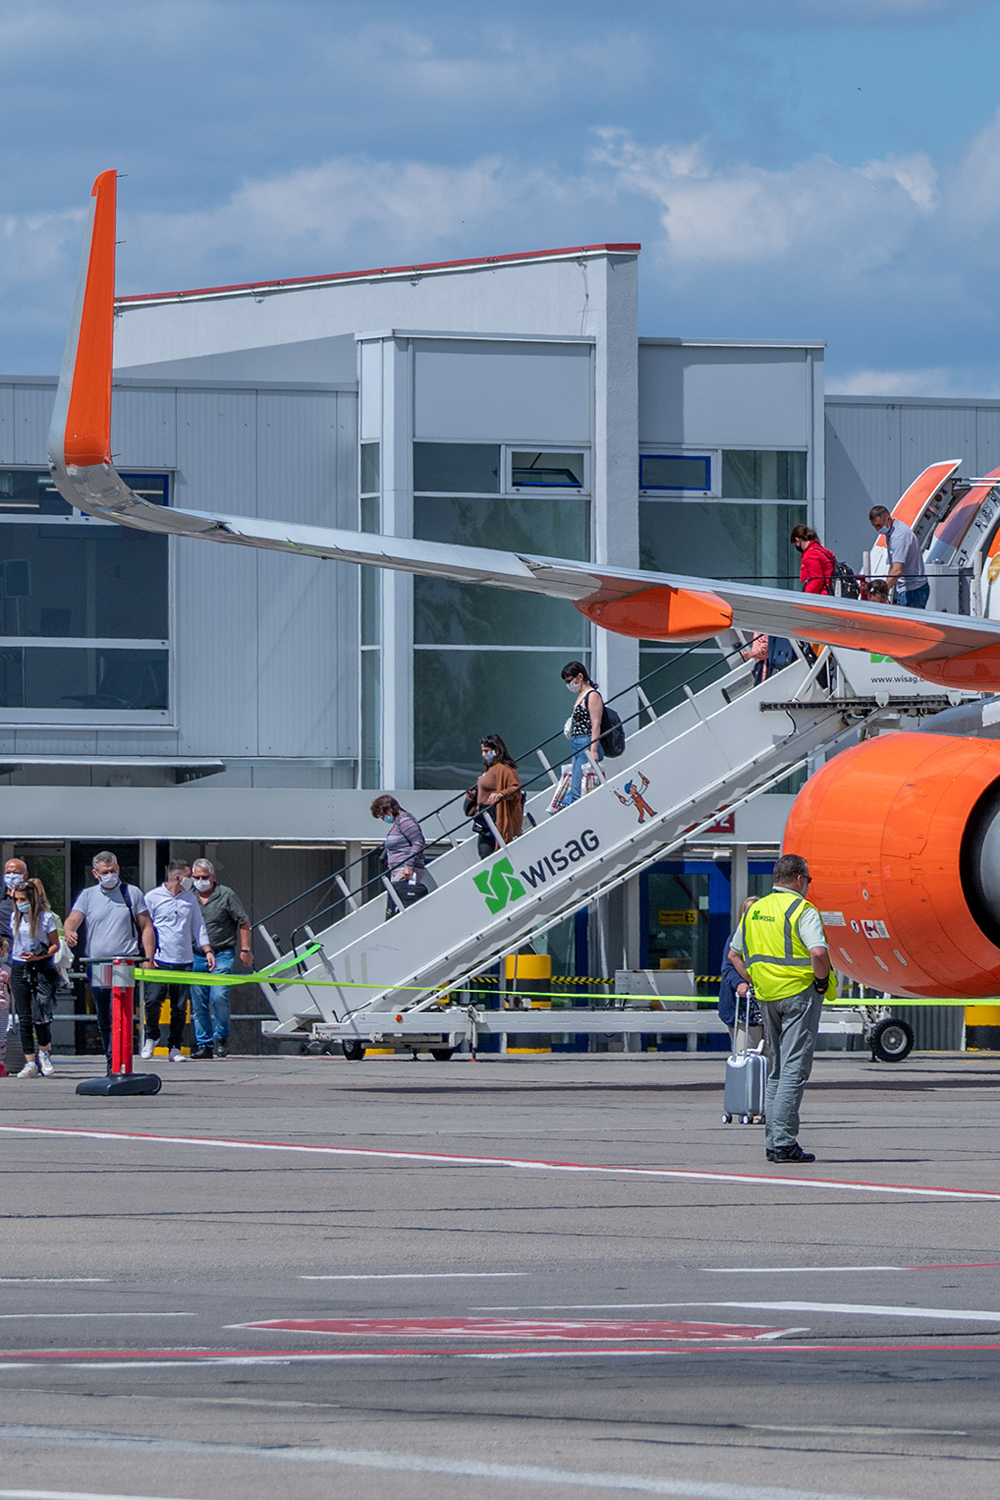 Passengers disembarking from the aircraft